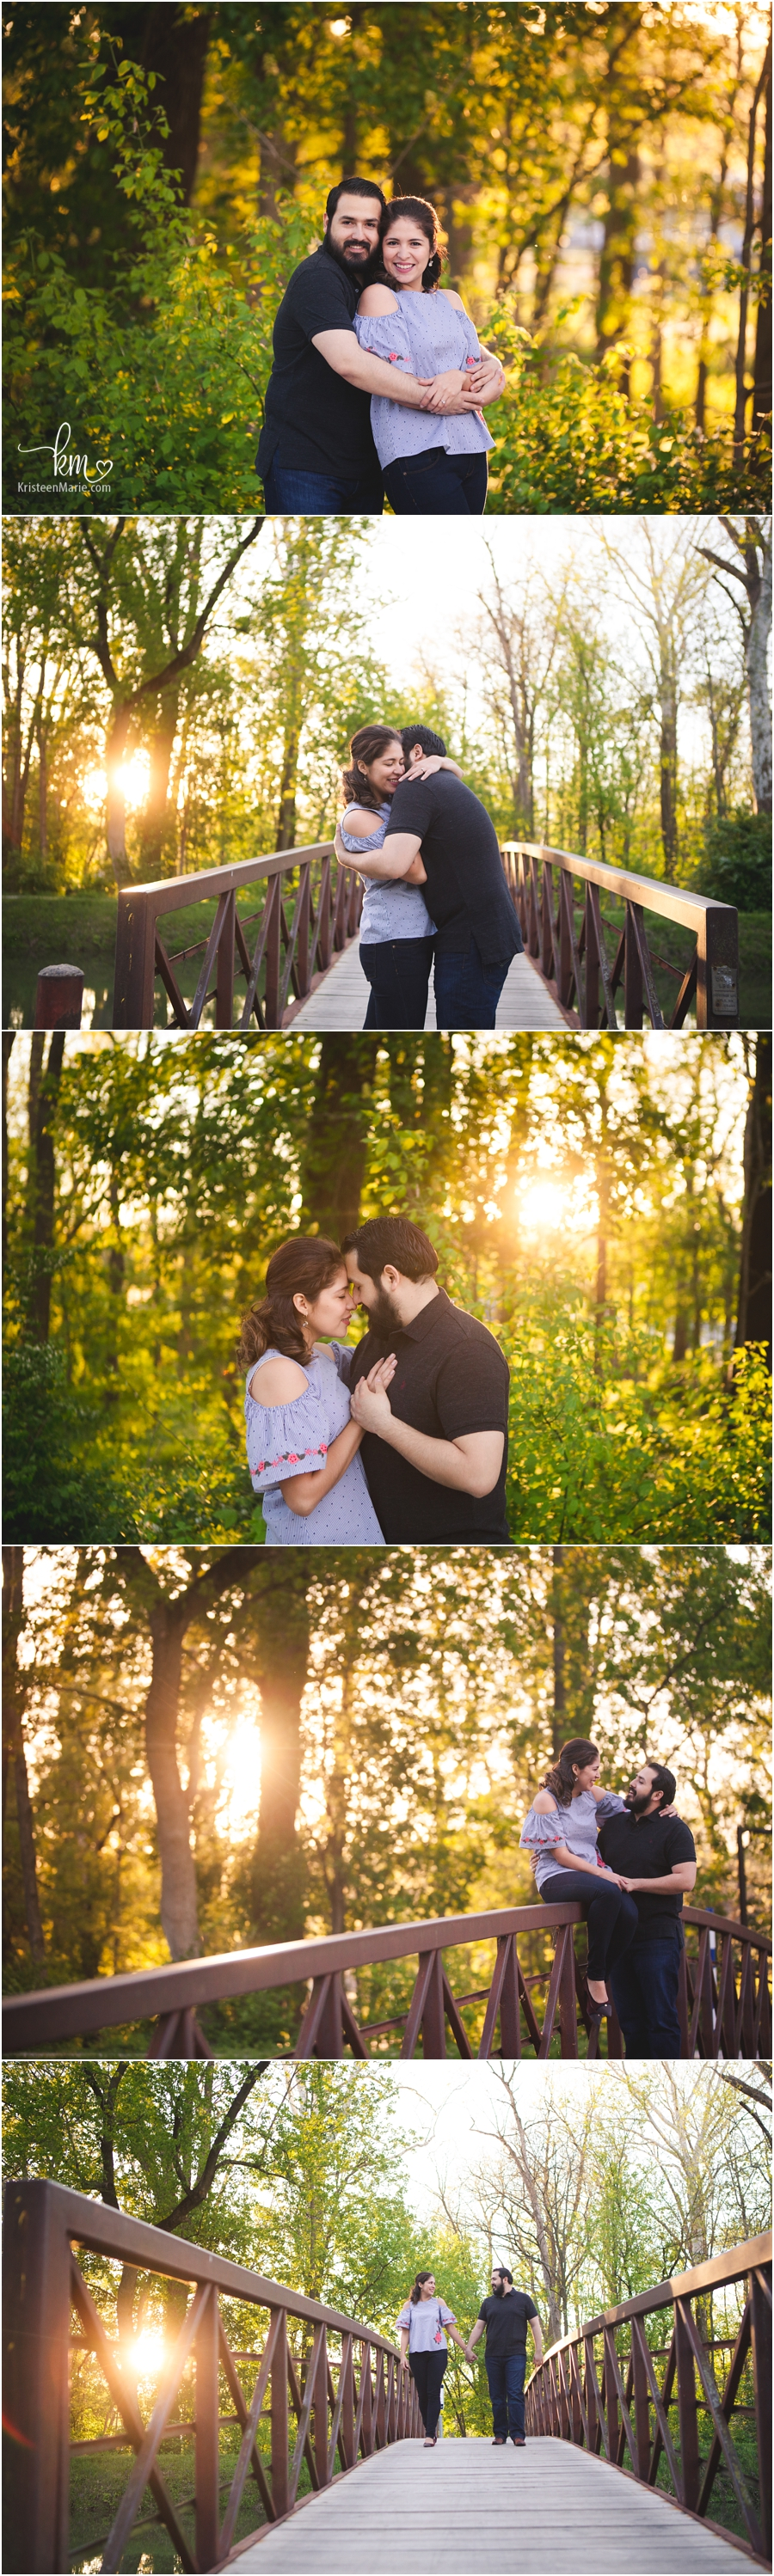 Engagement pictures at sunset in Indianapolis, Indiana